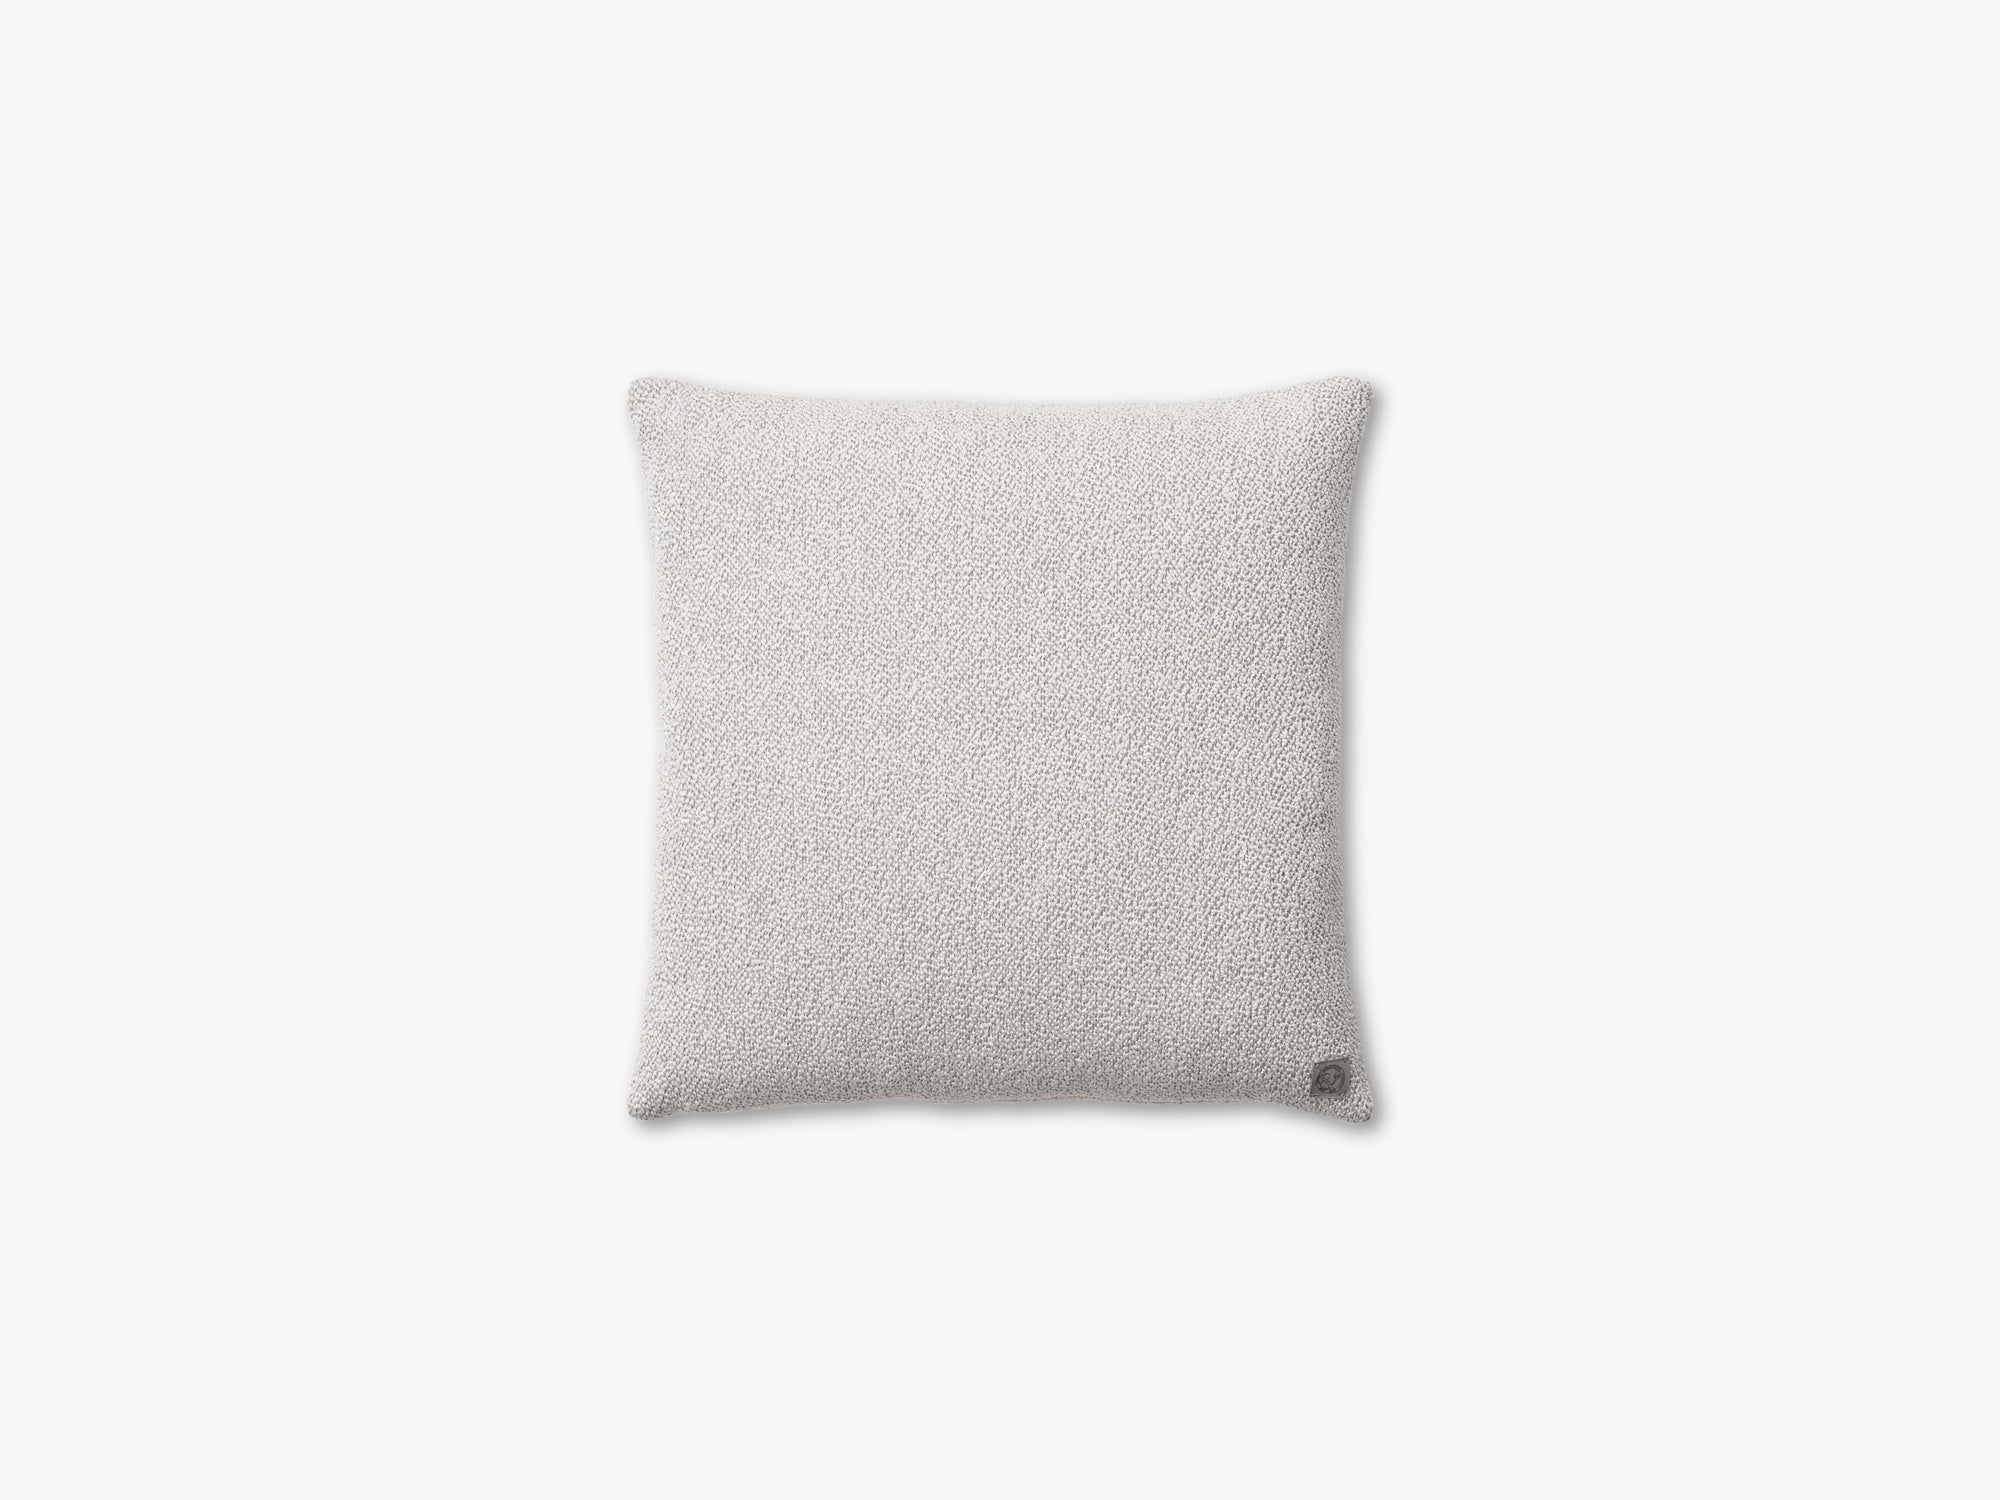 Collect Cushion SC28 - 50x50, Ivory&Sand Boucle fra &tradition